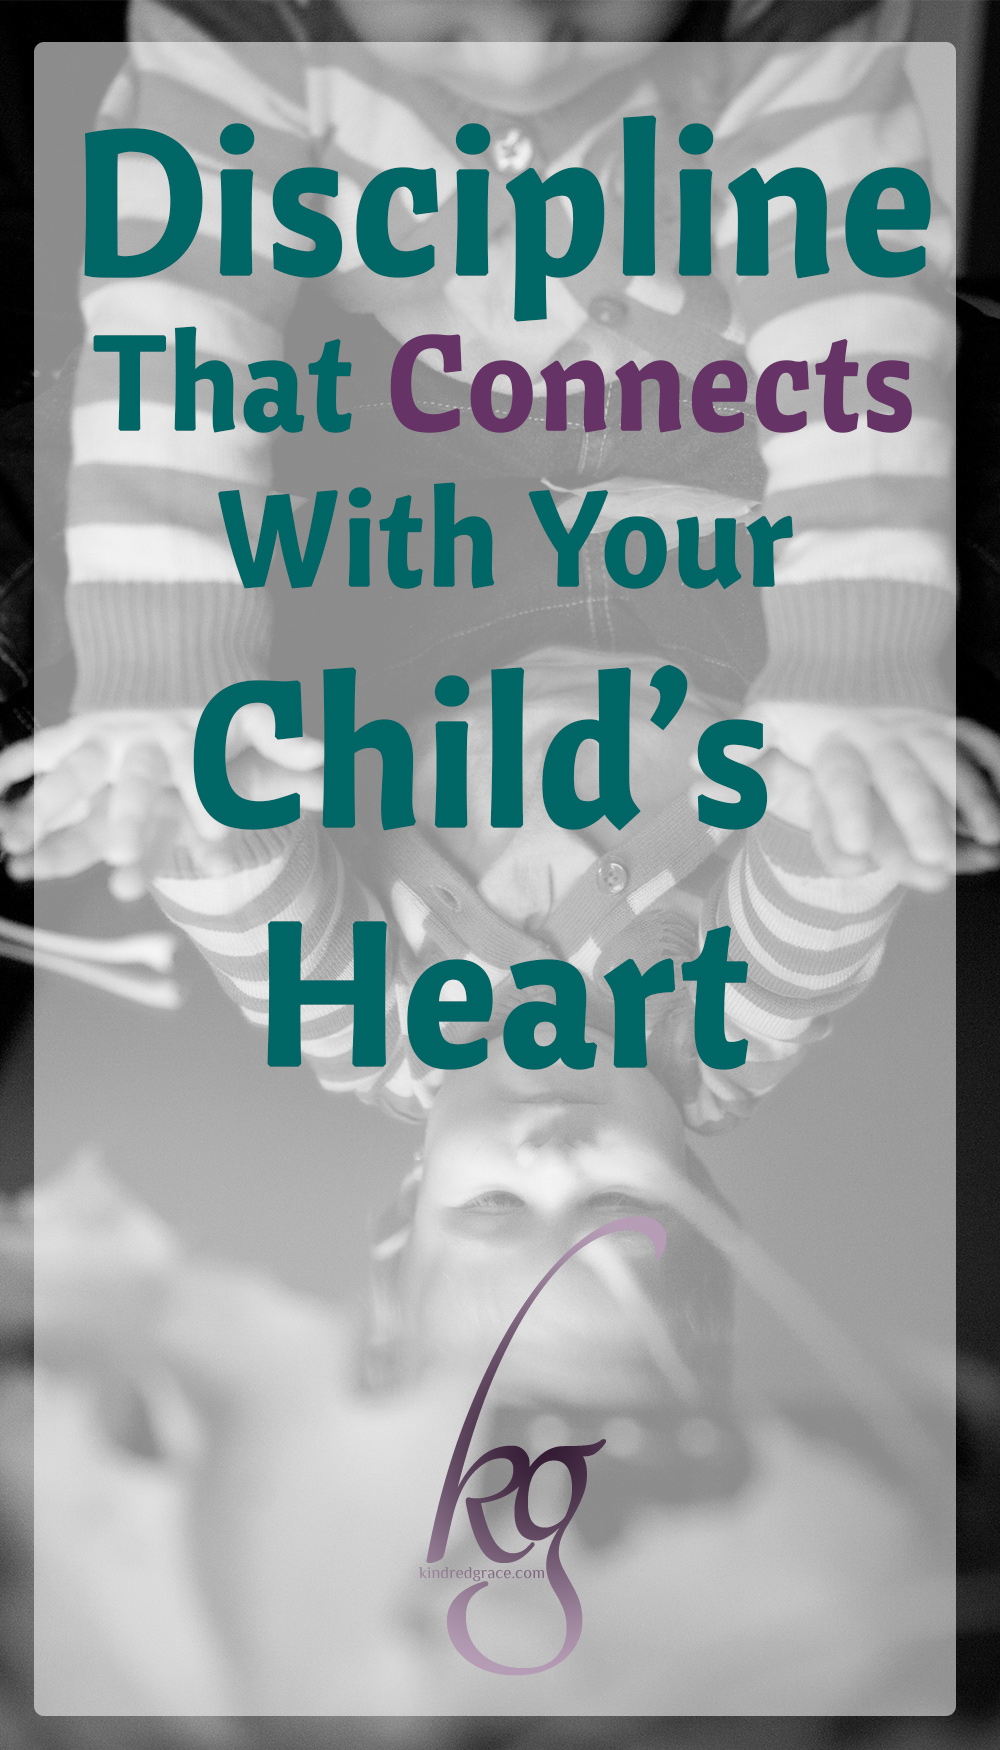 Review of Discipline That Connects With Your Child's Heart, a parenting book by Jim and Lynne Jackson: This book models how to walk the long, difficult-yet-rewarding road of raising children with the tools to govern themselves, obey from a heart that wants to please God, and solve conflicts well. via @KindredGrace